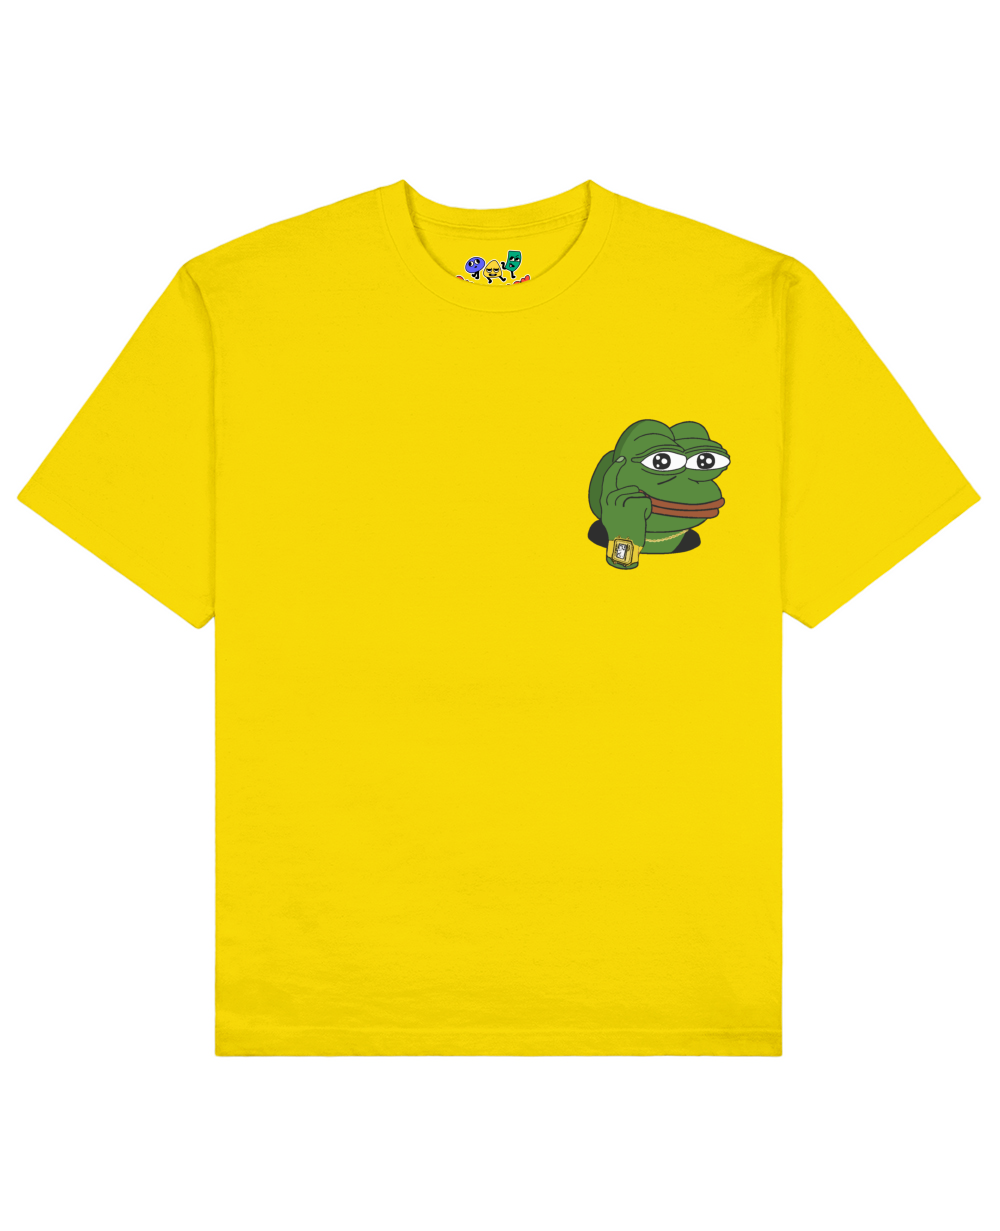 Smart Guy Memes Pepe The Frog Print T-Shirt in Yellow